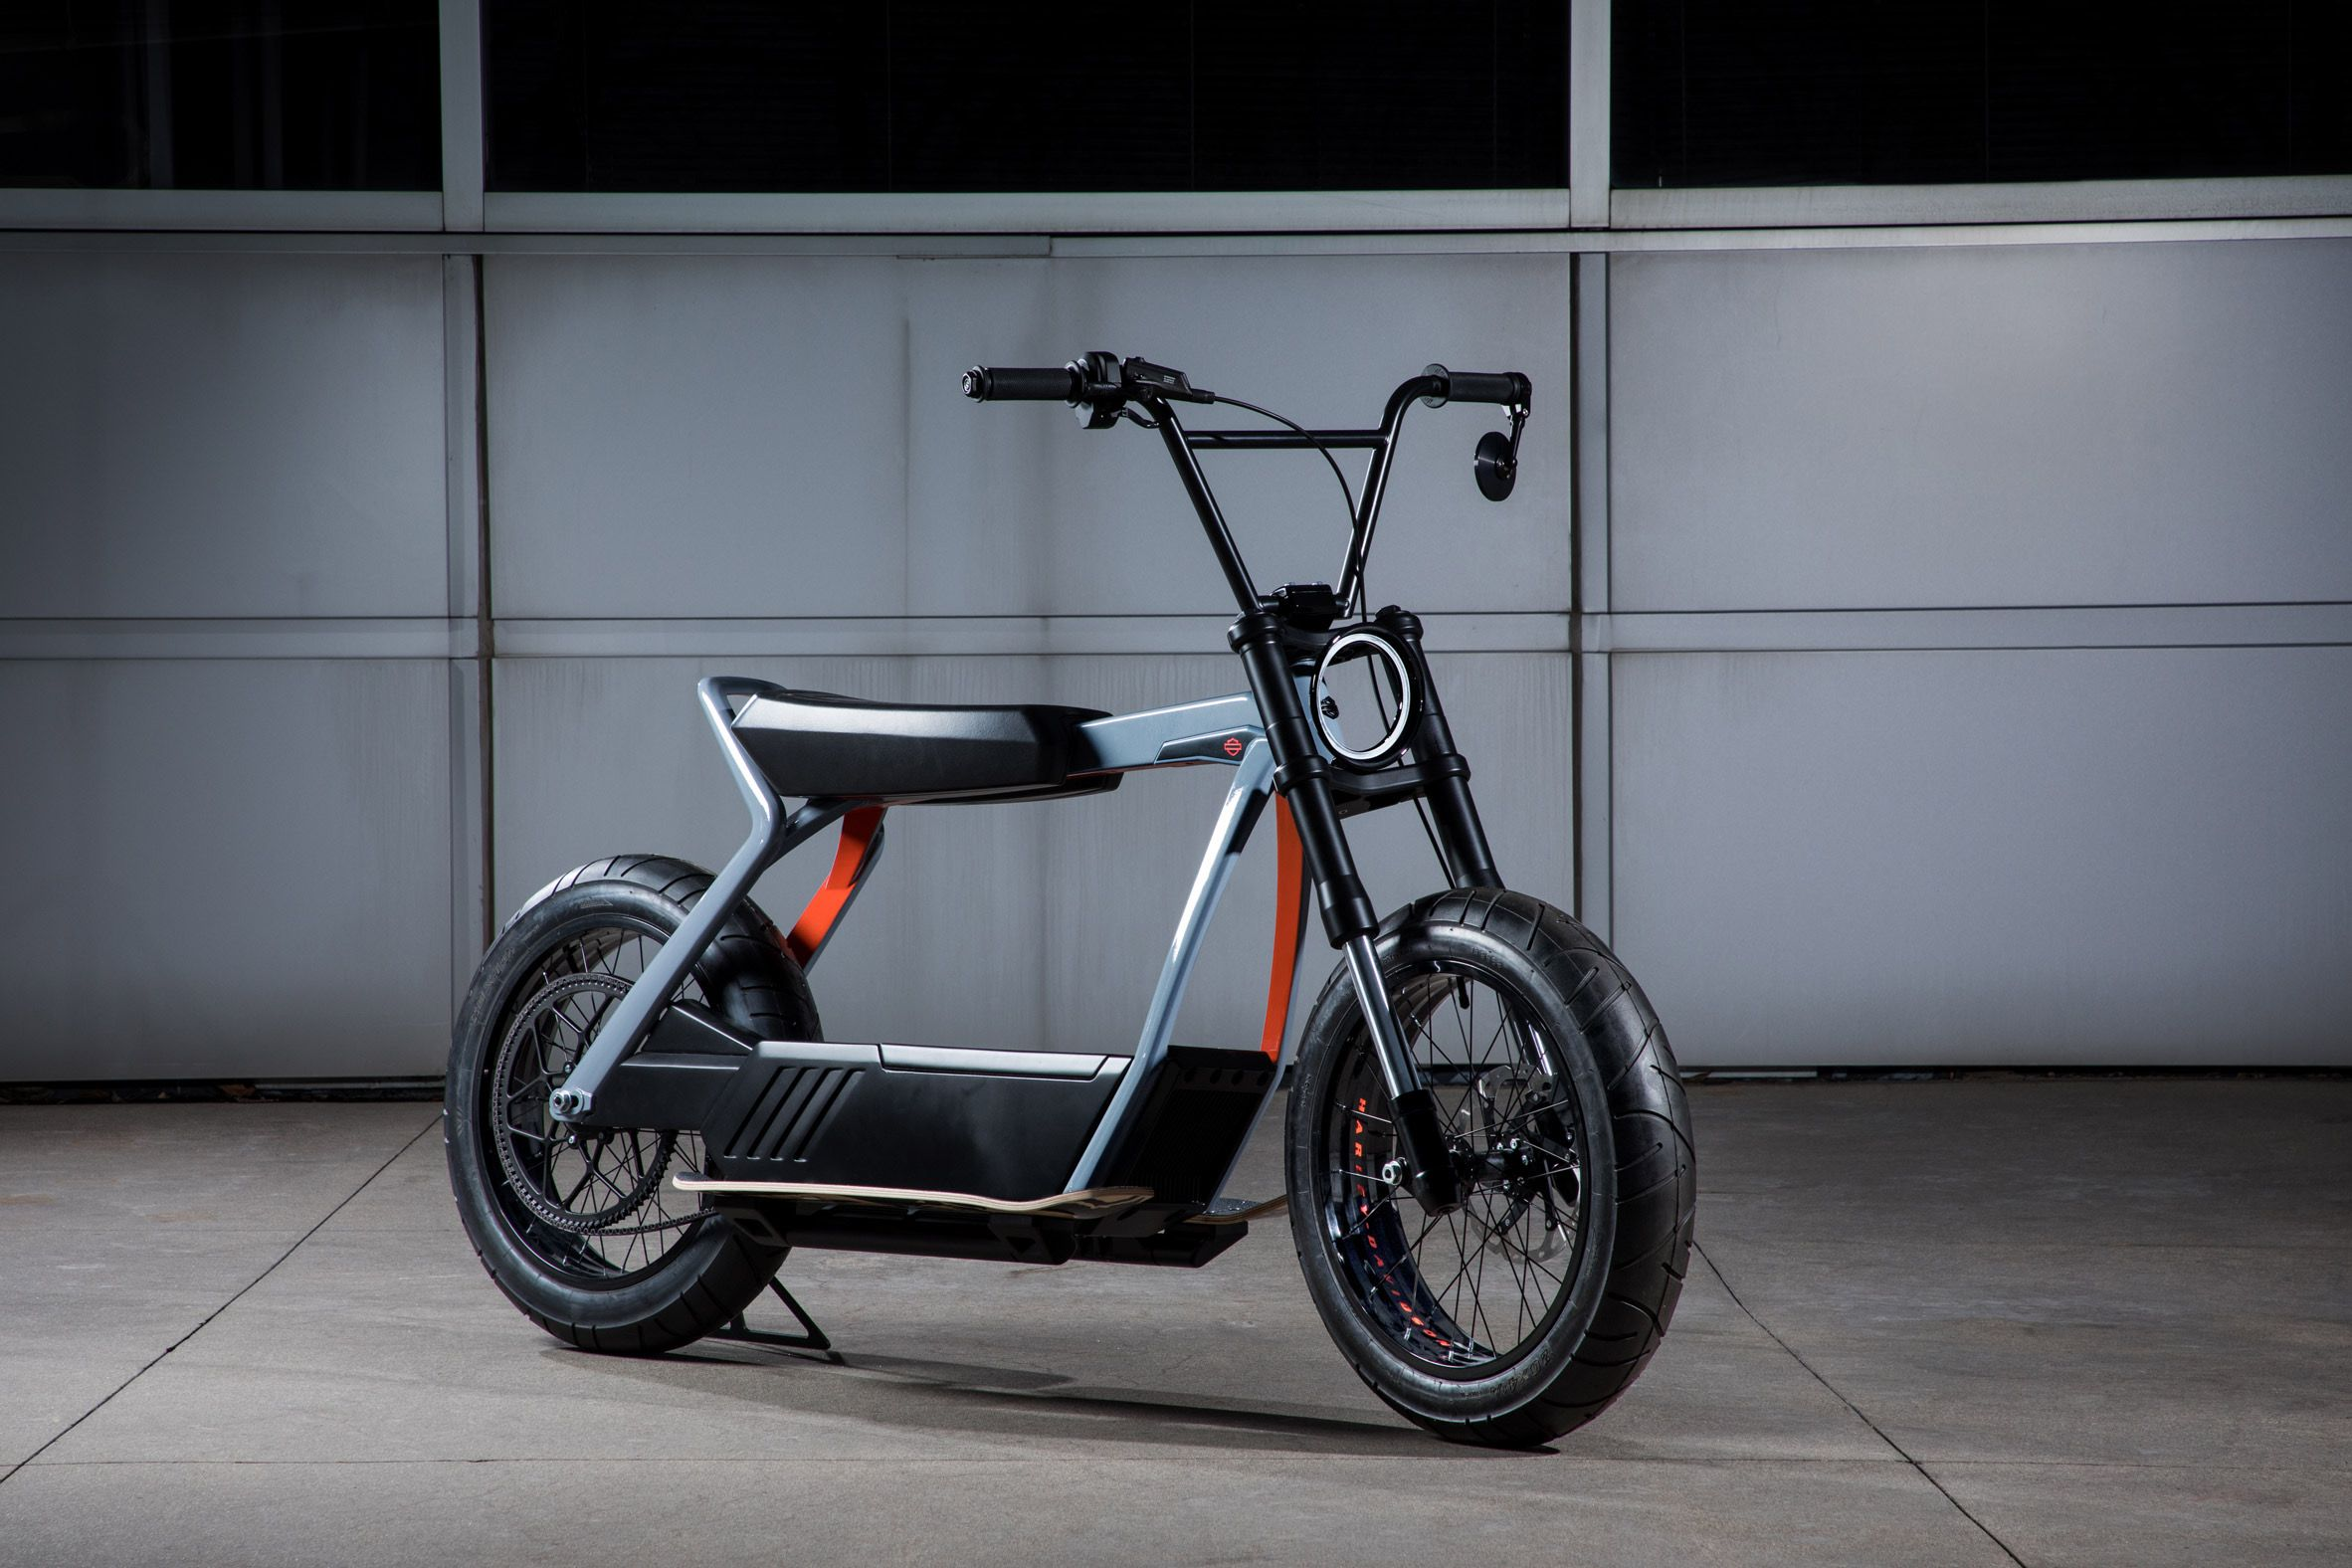 Harley Davidson Electric Commuter Bike